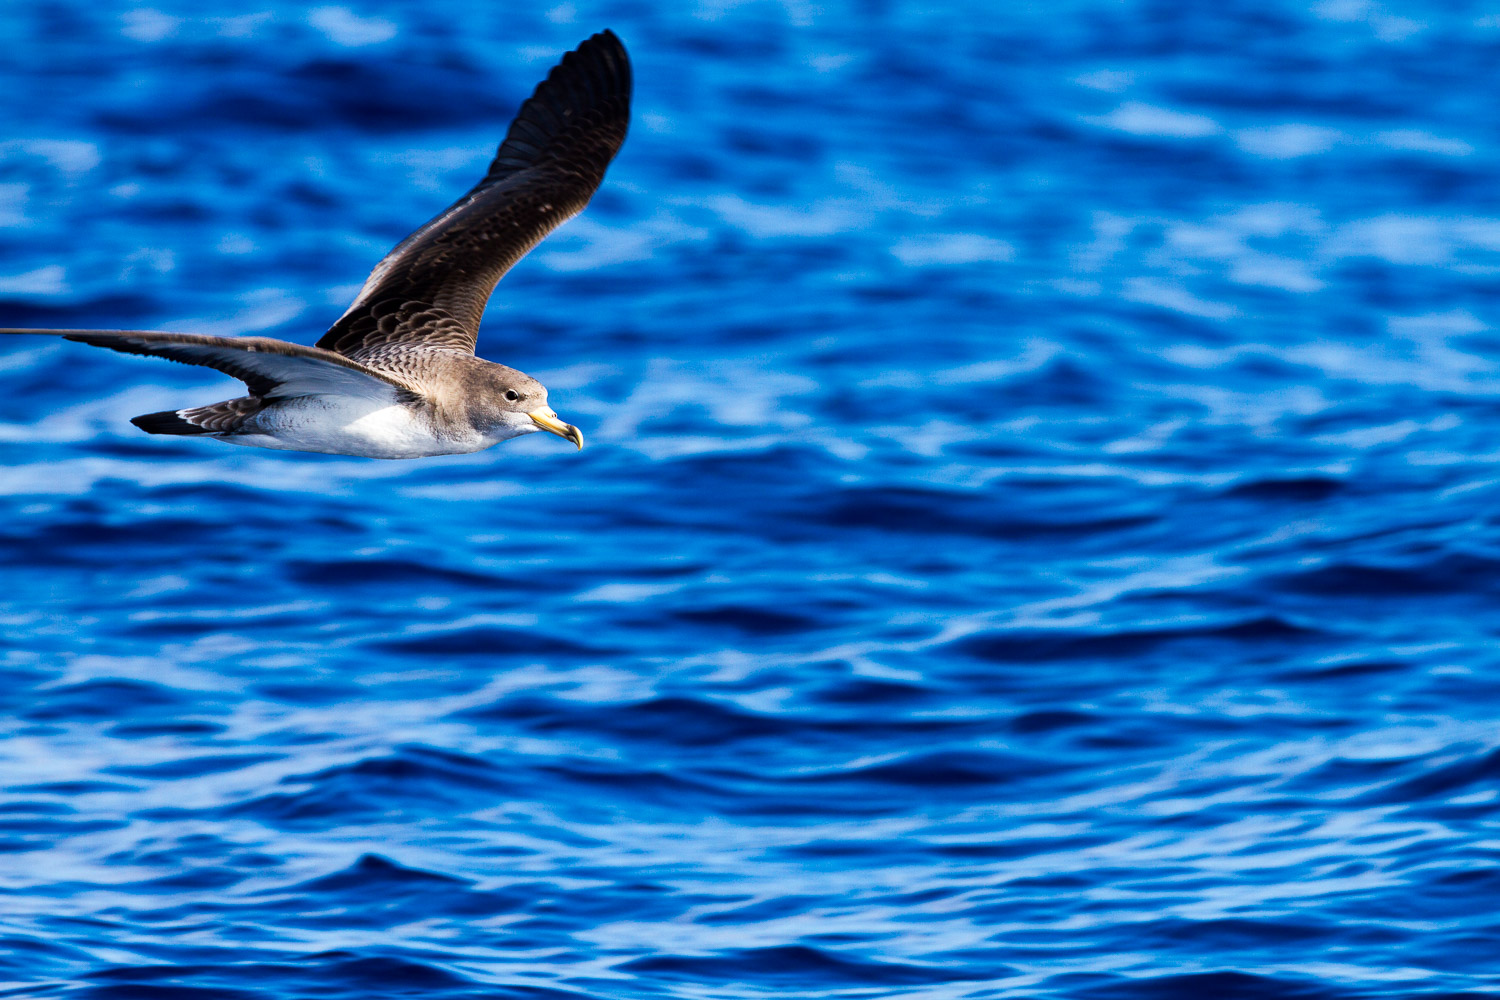 A Photograph Showing A Seabird Flying Low Over The Blue Atlantic Ocean Off The Coast Of La Gomera In The Canary Islands.